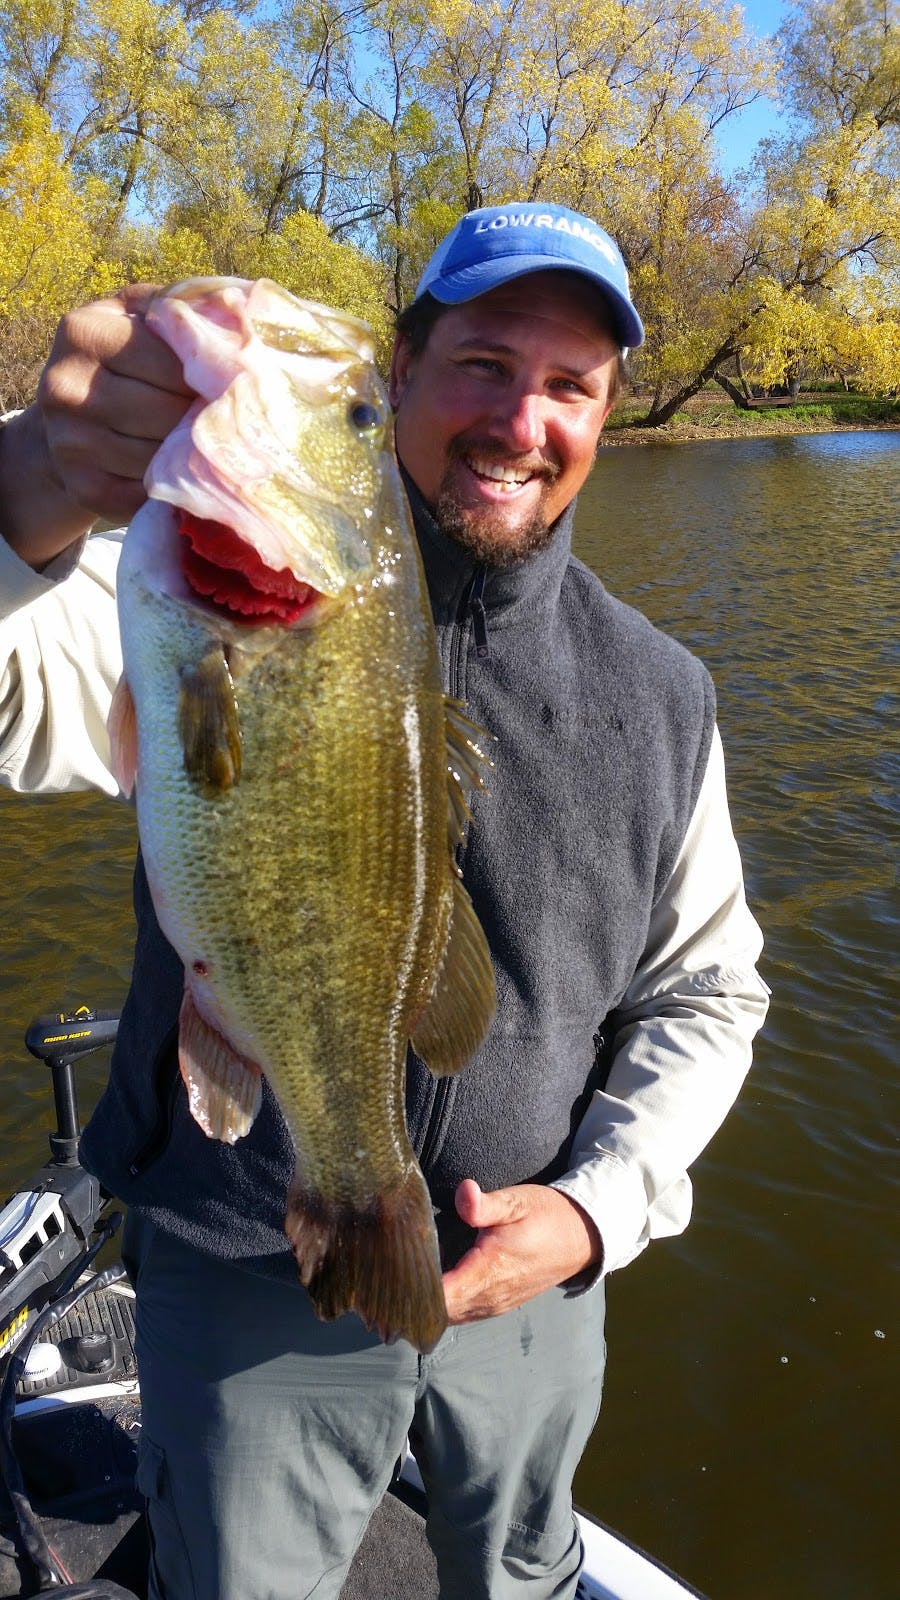 Greg Huff proudly displays his new personal best, a seven pound fall beast!